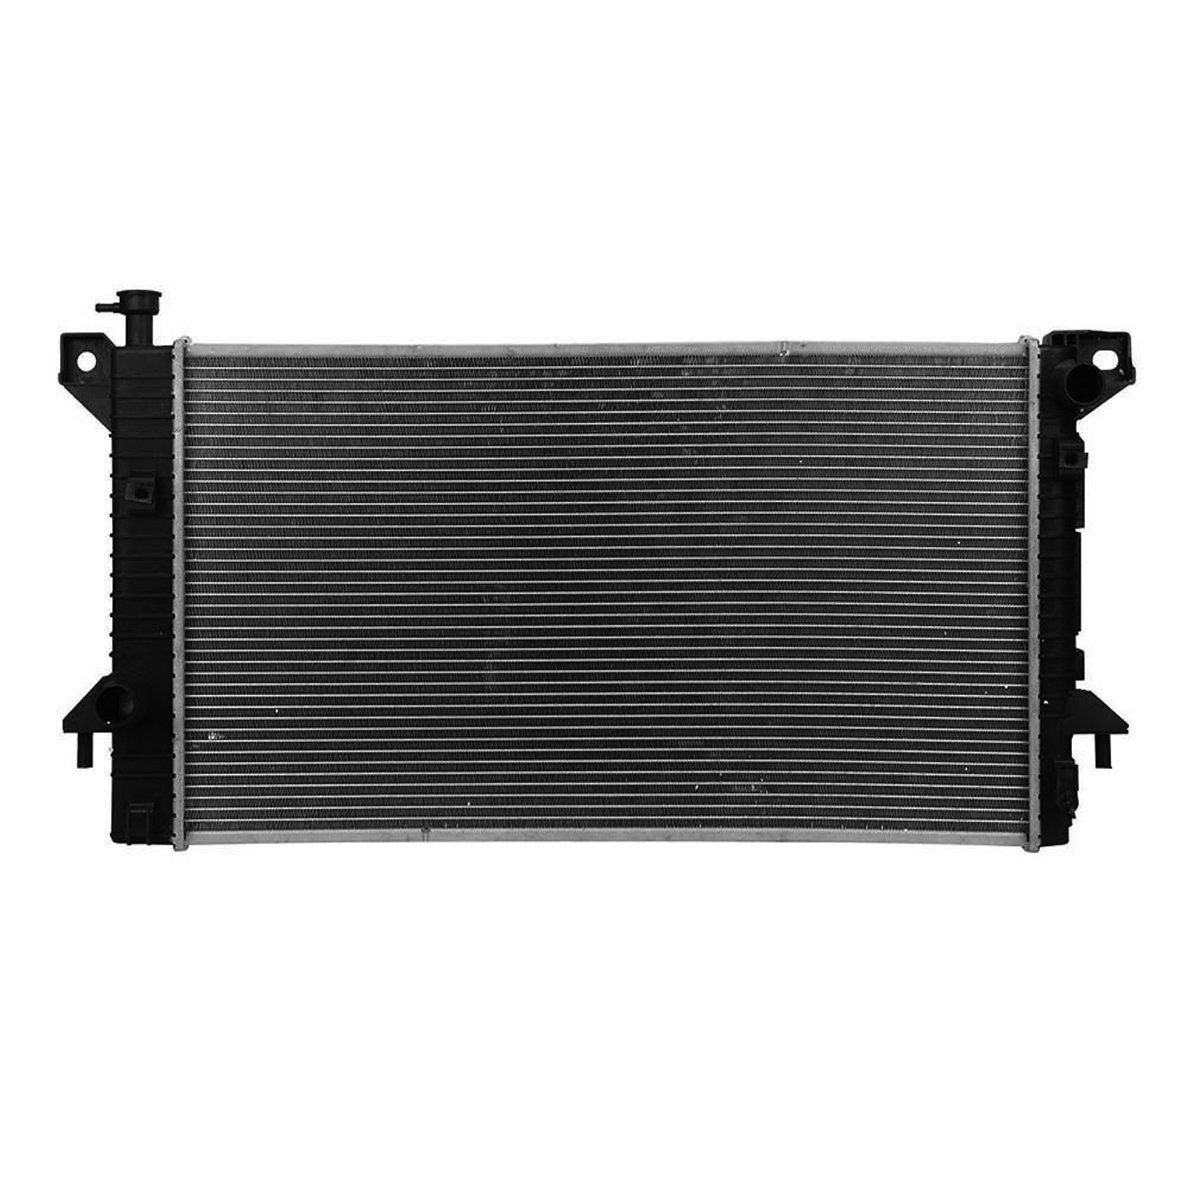 ECCPP Radiator 13099 for 2009-2014 Lincoln Navigator 2009-2010 F-150 F-250 F-350 2007-2014 Ford Expedition 5.4L 4.6L 4.8L by ECCPP